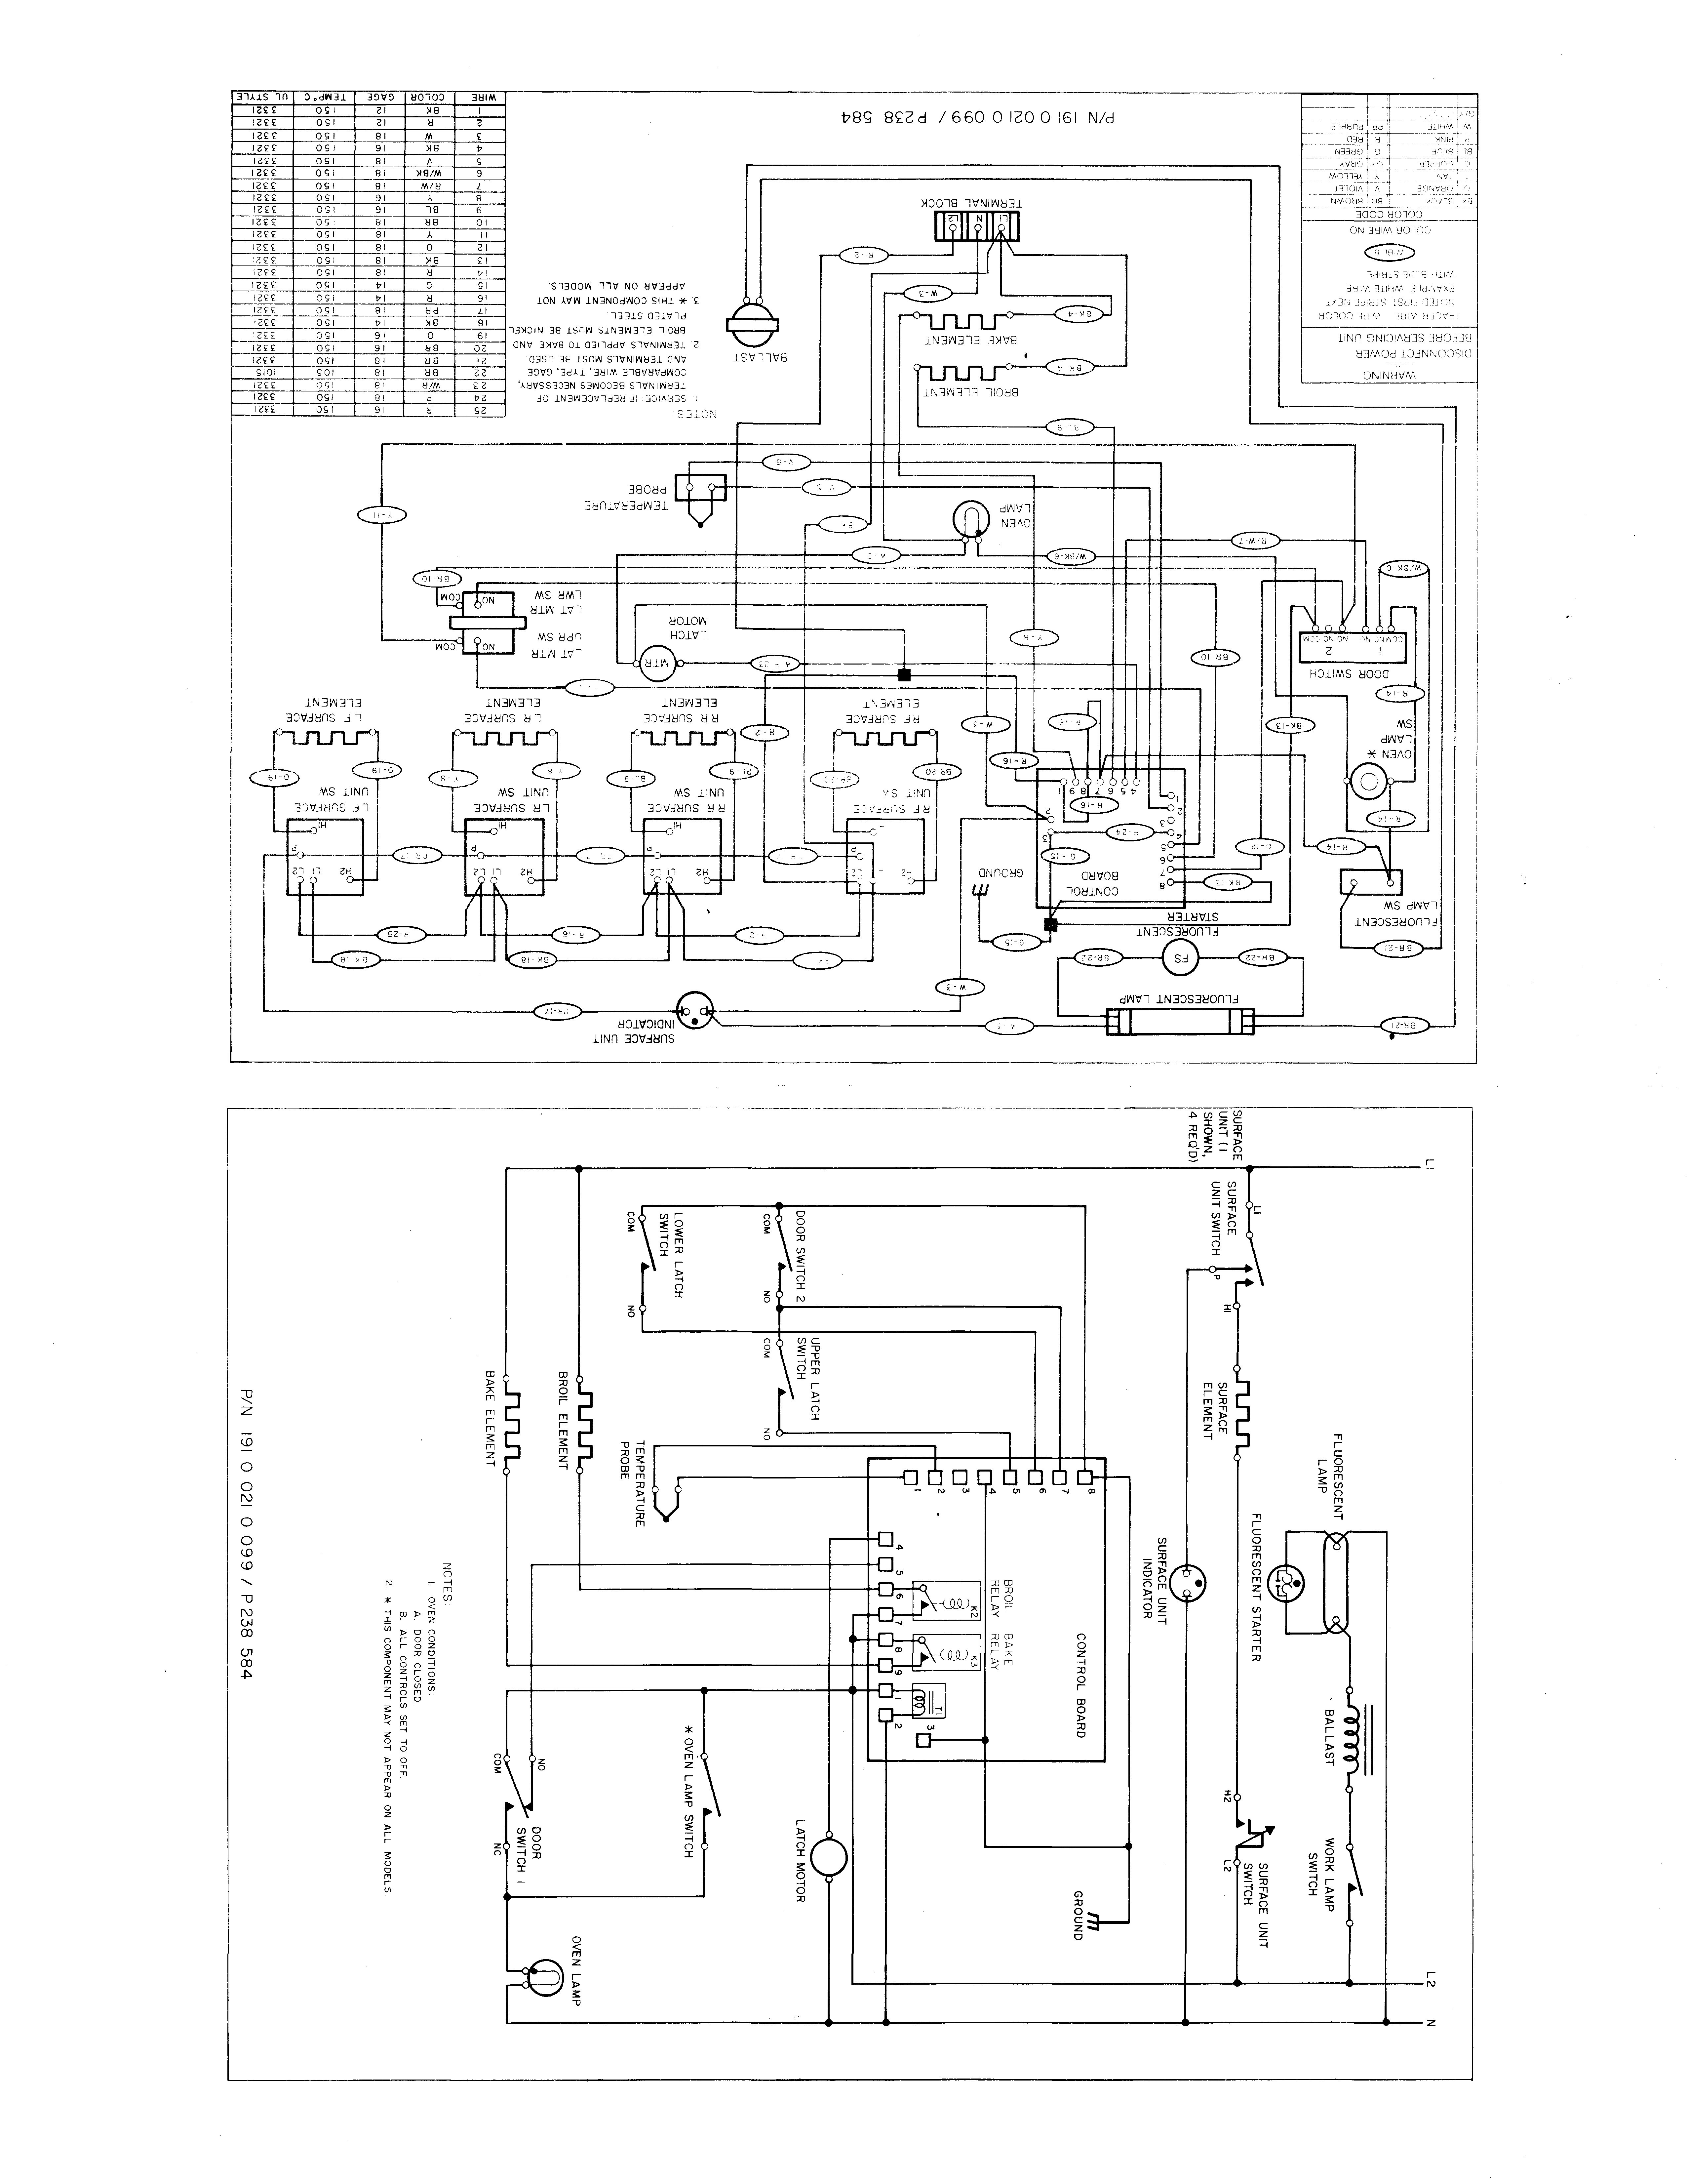 i have a frigidaire re36bnl1 range and the oven control board one of your original suggestions was correct about loose connections thanks for your efforts i uploaded the wiring diagram to you for future reference